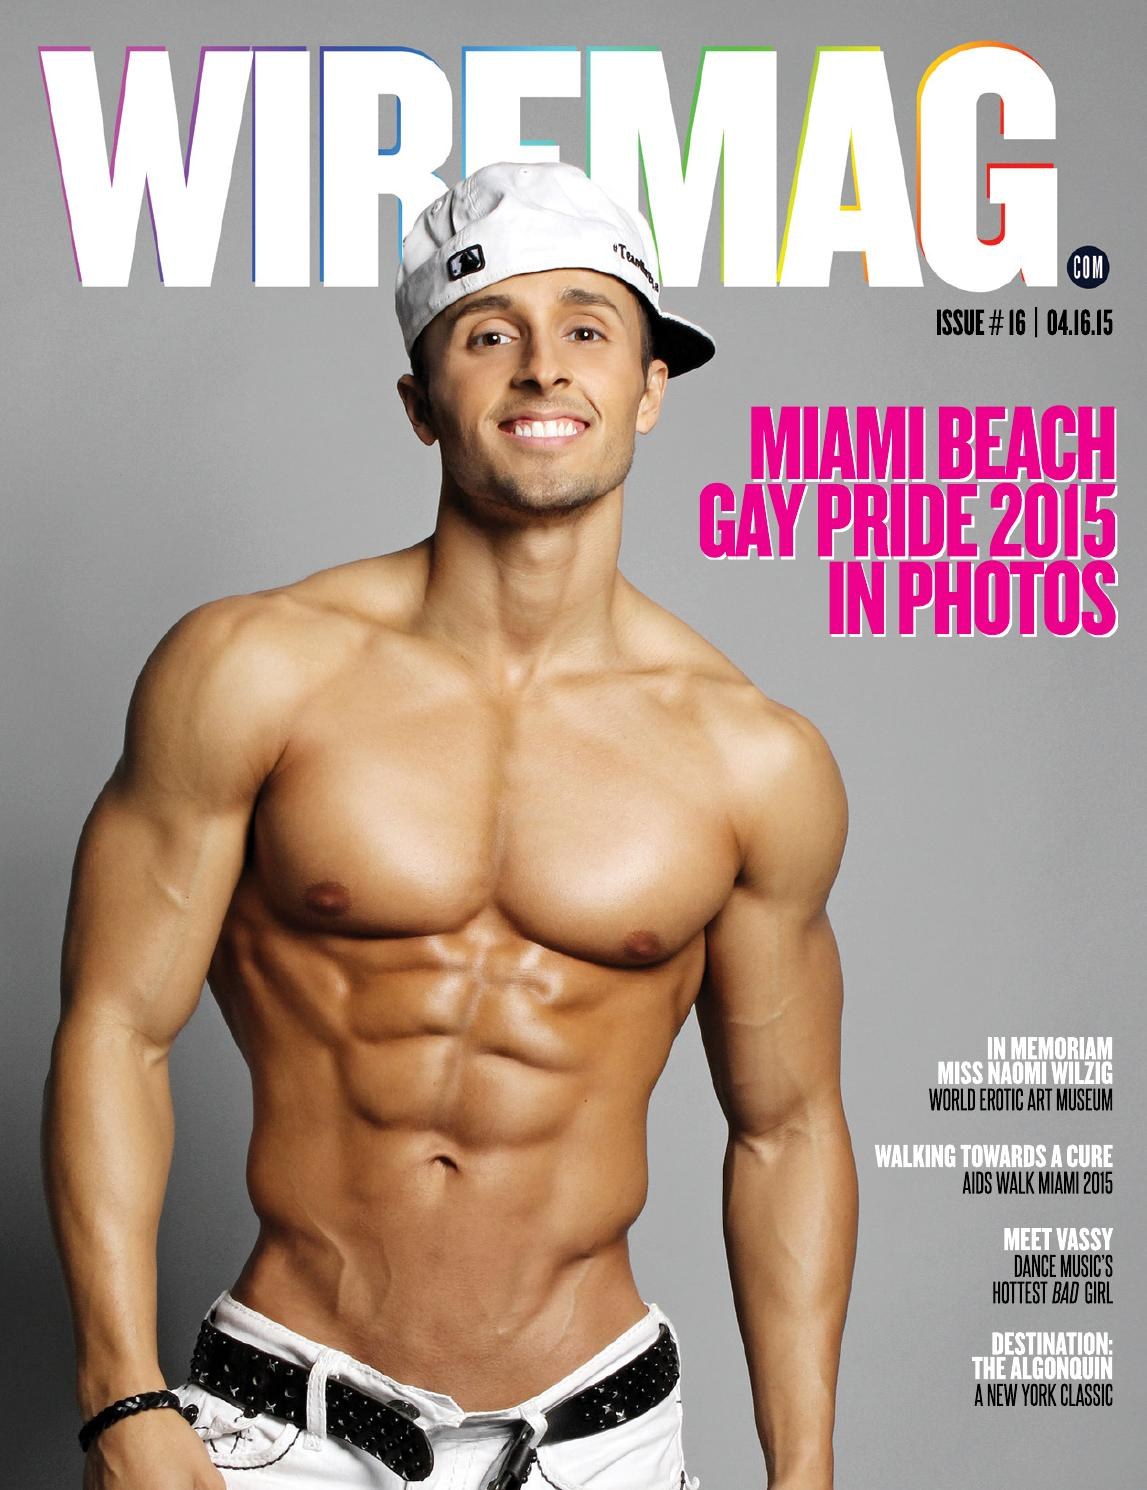 from Cruz wire gay newspaper miami beach fl